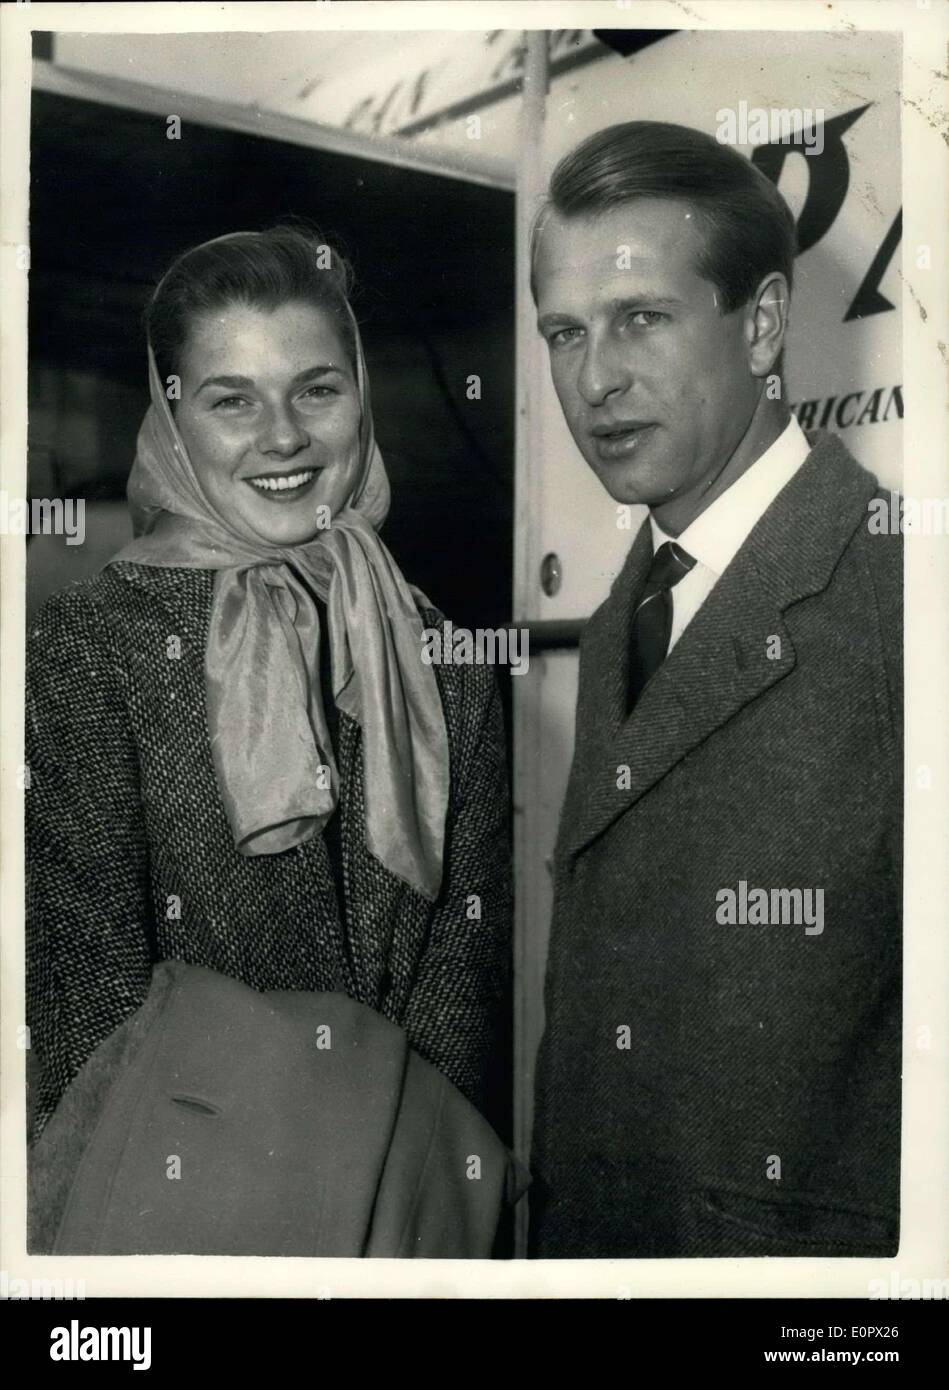 Mar. 27, 1957 - Peter Collins brings his Bride Home Racing Driver and Actress wife: Peter Collins the popular British Motor Race Driver - and his bride - actress Louise Cordier arrived at London Airport today. The couple met at the Prince Rainier - Grace Kelly wedding in Monte Carlo - and were married in Miami. Photo Shows Mr. and Mrs. Peter Collins on arrival at London Airport today. - Stock Image